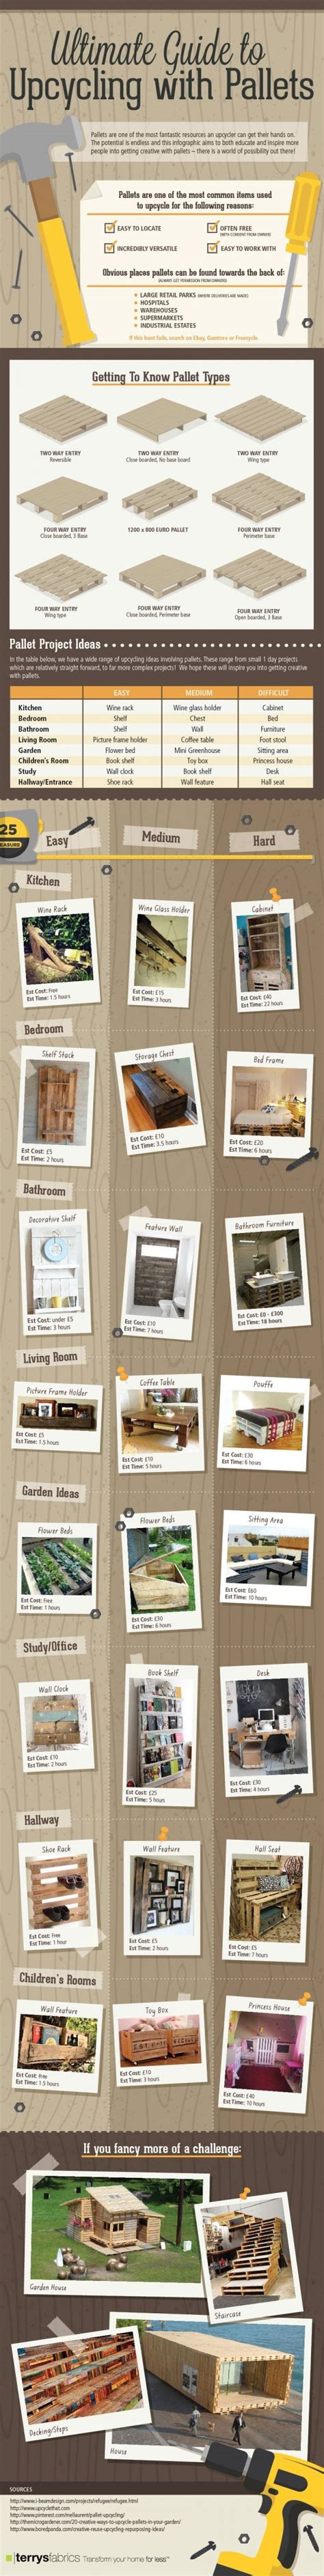 inspiring ideas for recycled diy 1001 pallets recycled wood pallet ideas diy pallet projects part 8 decor diy